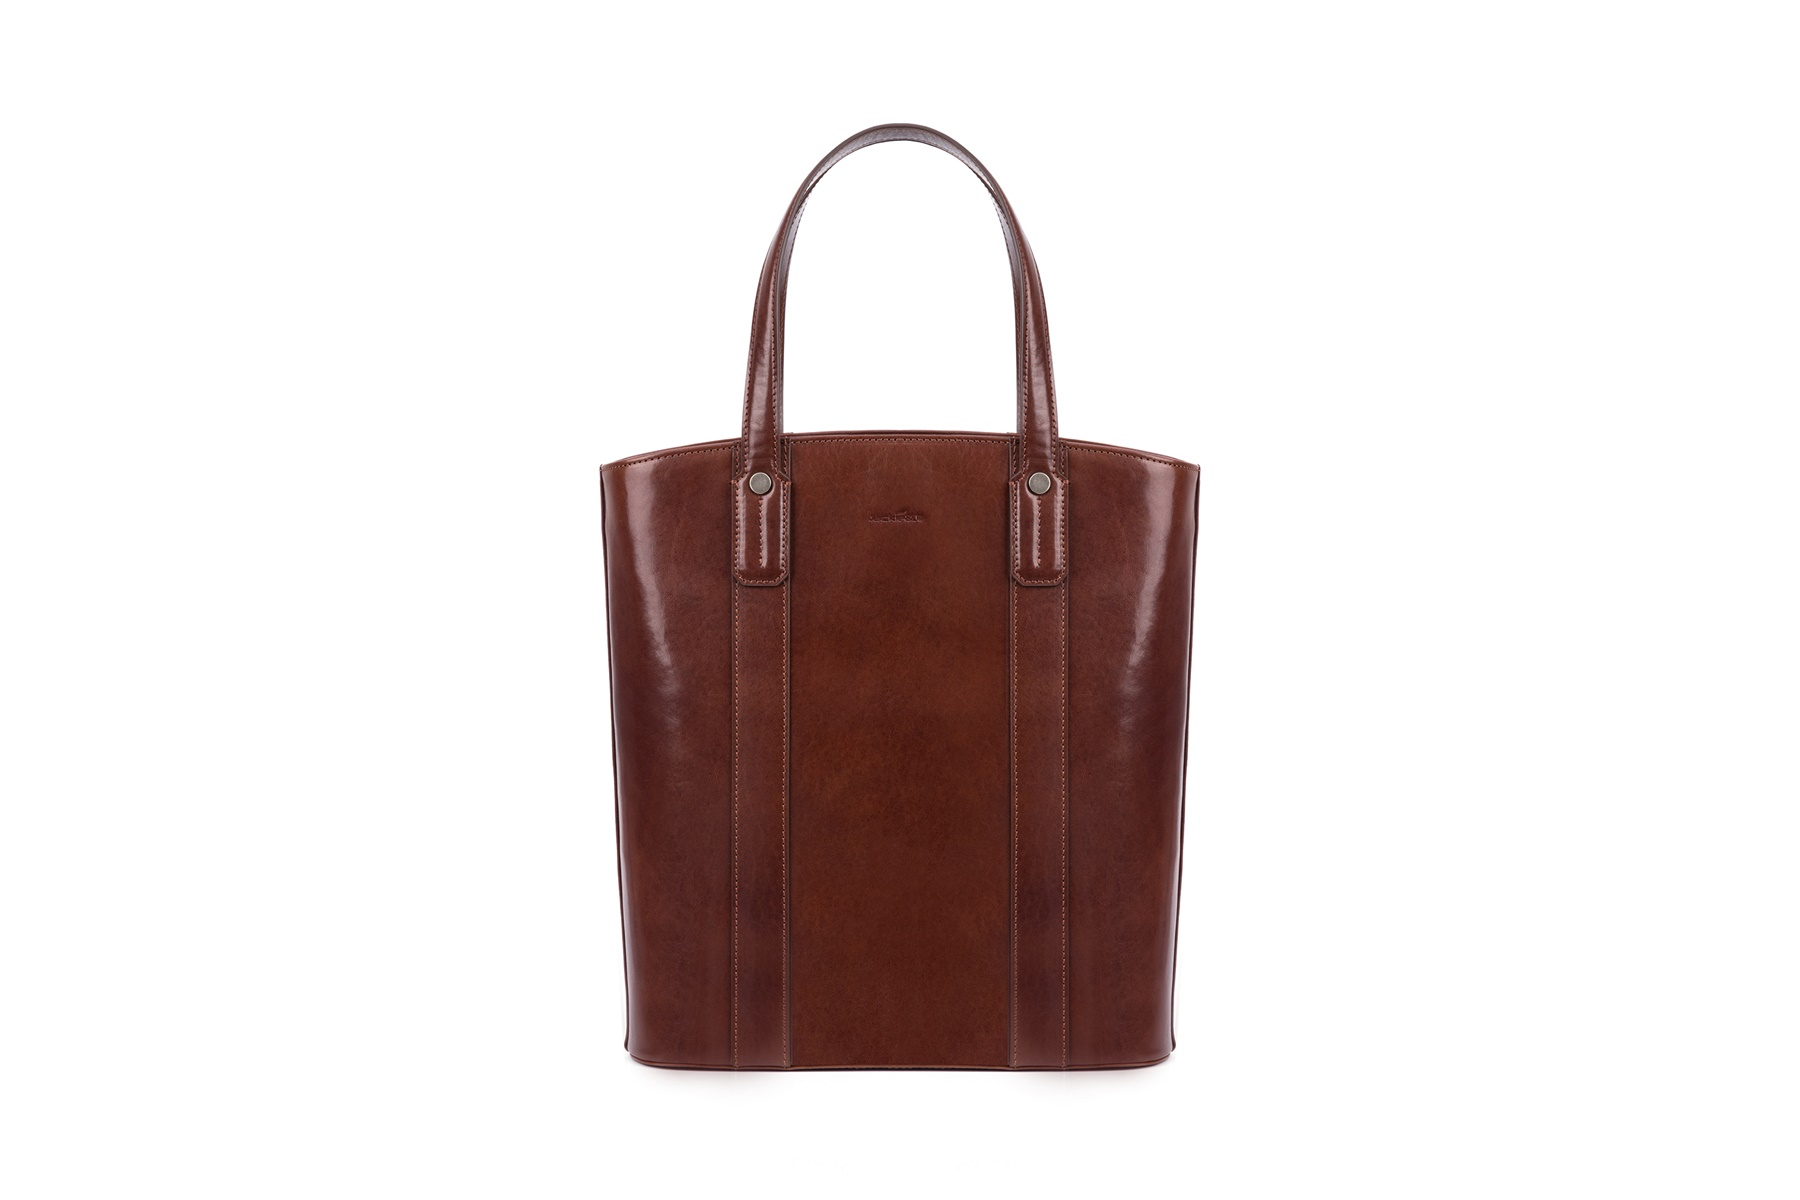 GF bags-Womens Work Tote Tote Leather Handle With Zipper Closure